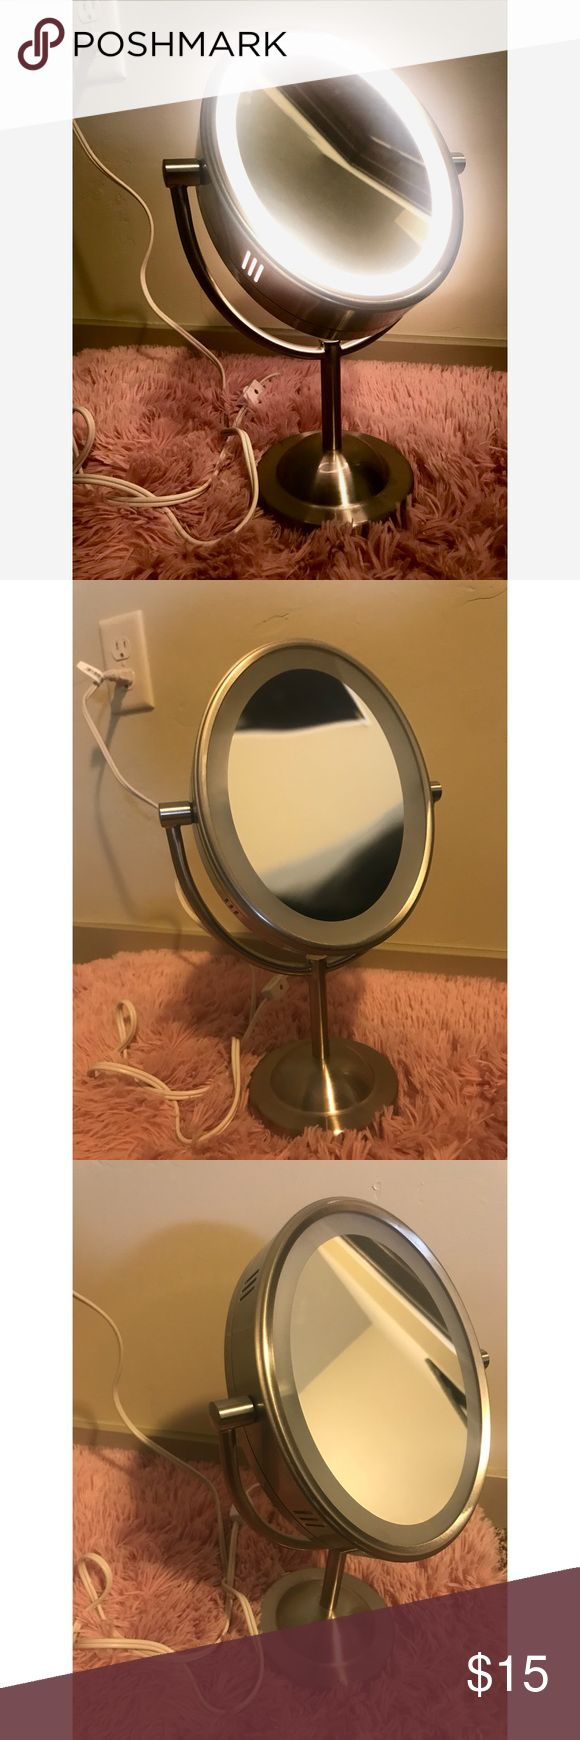 Conair Reflections Lighted Mirror Lighted vanity mirror that plugs in (no batteries needed!)... has regular side and magnified side  Has barely been used and looks brand new Conair Makeup Brushes & Tools